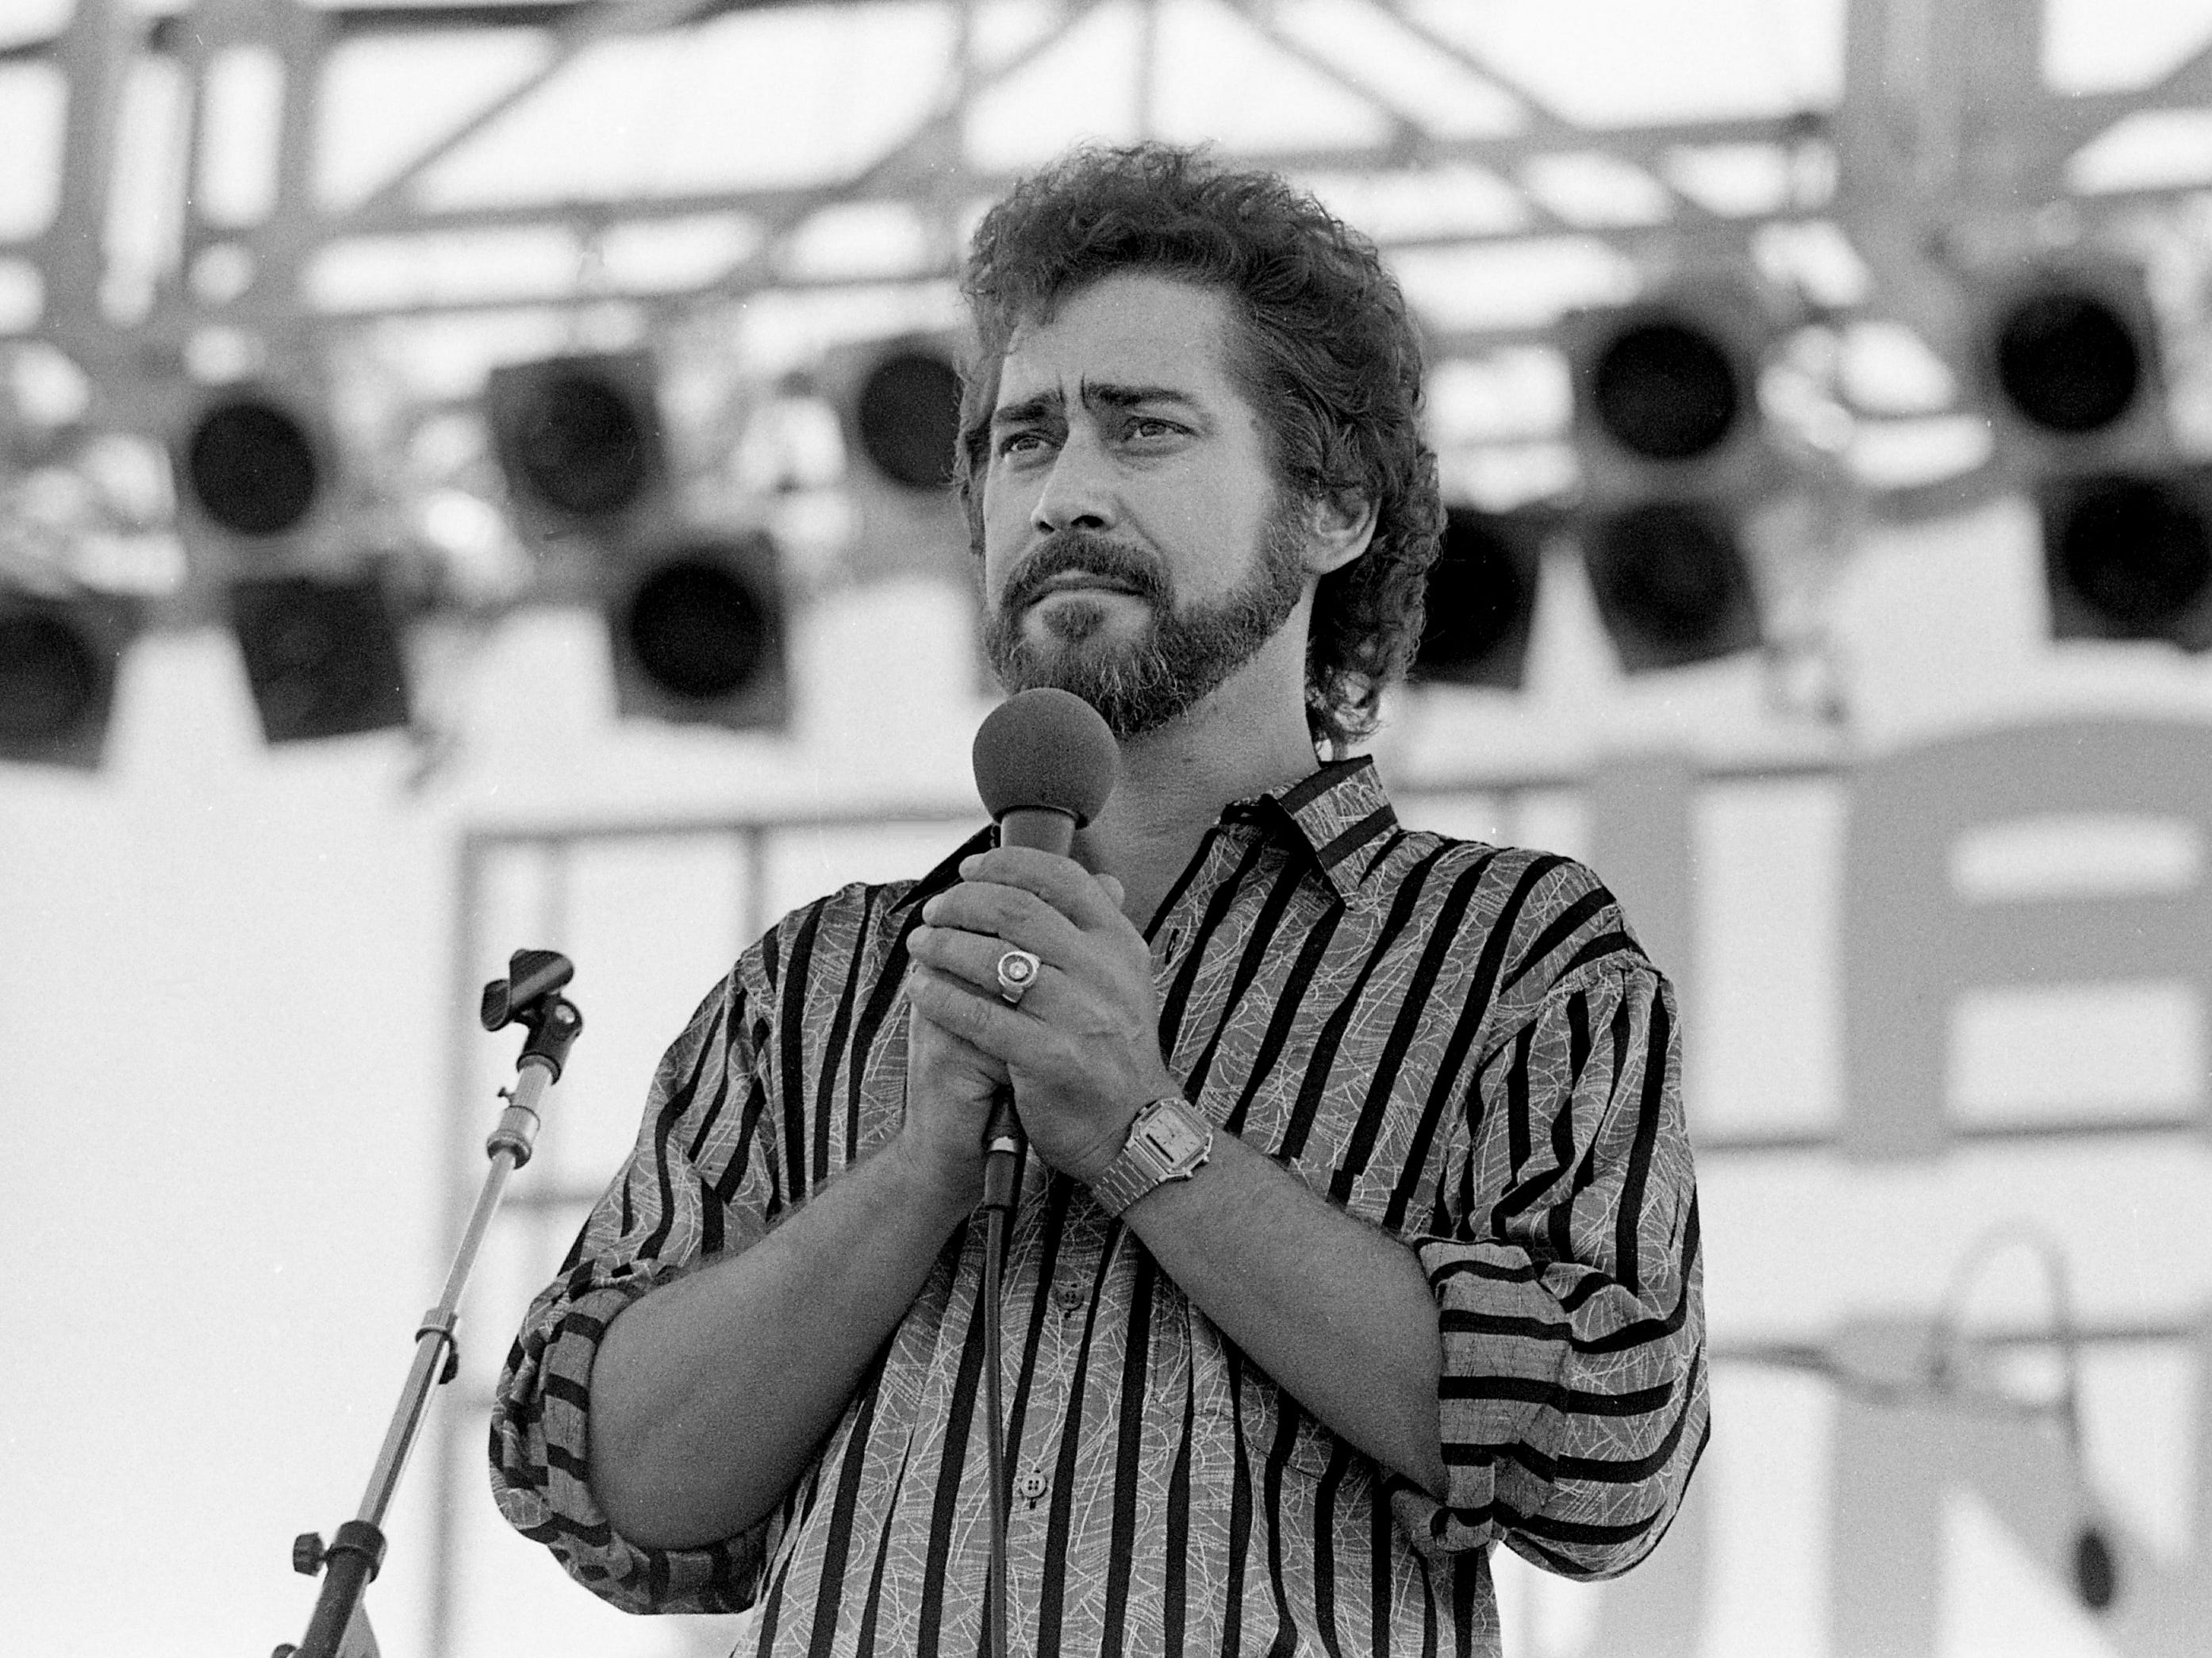 Earl Thomas Conley performs at the Nashville Songwriters Association showcase June 8, 1984, during Fan Fair.